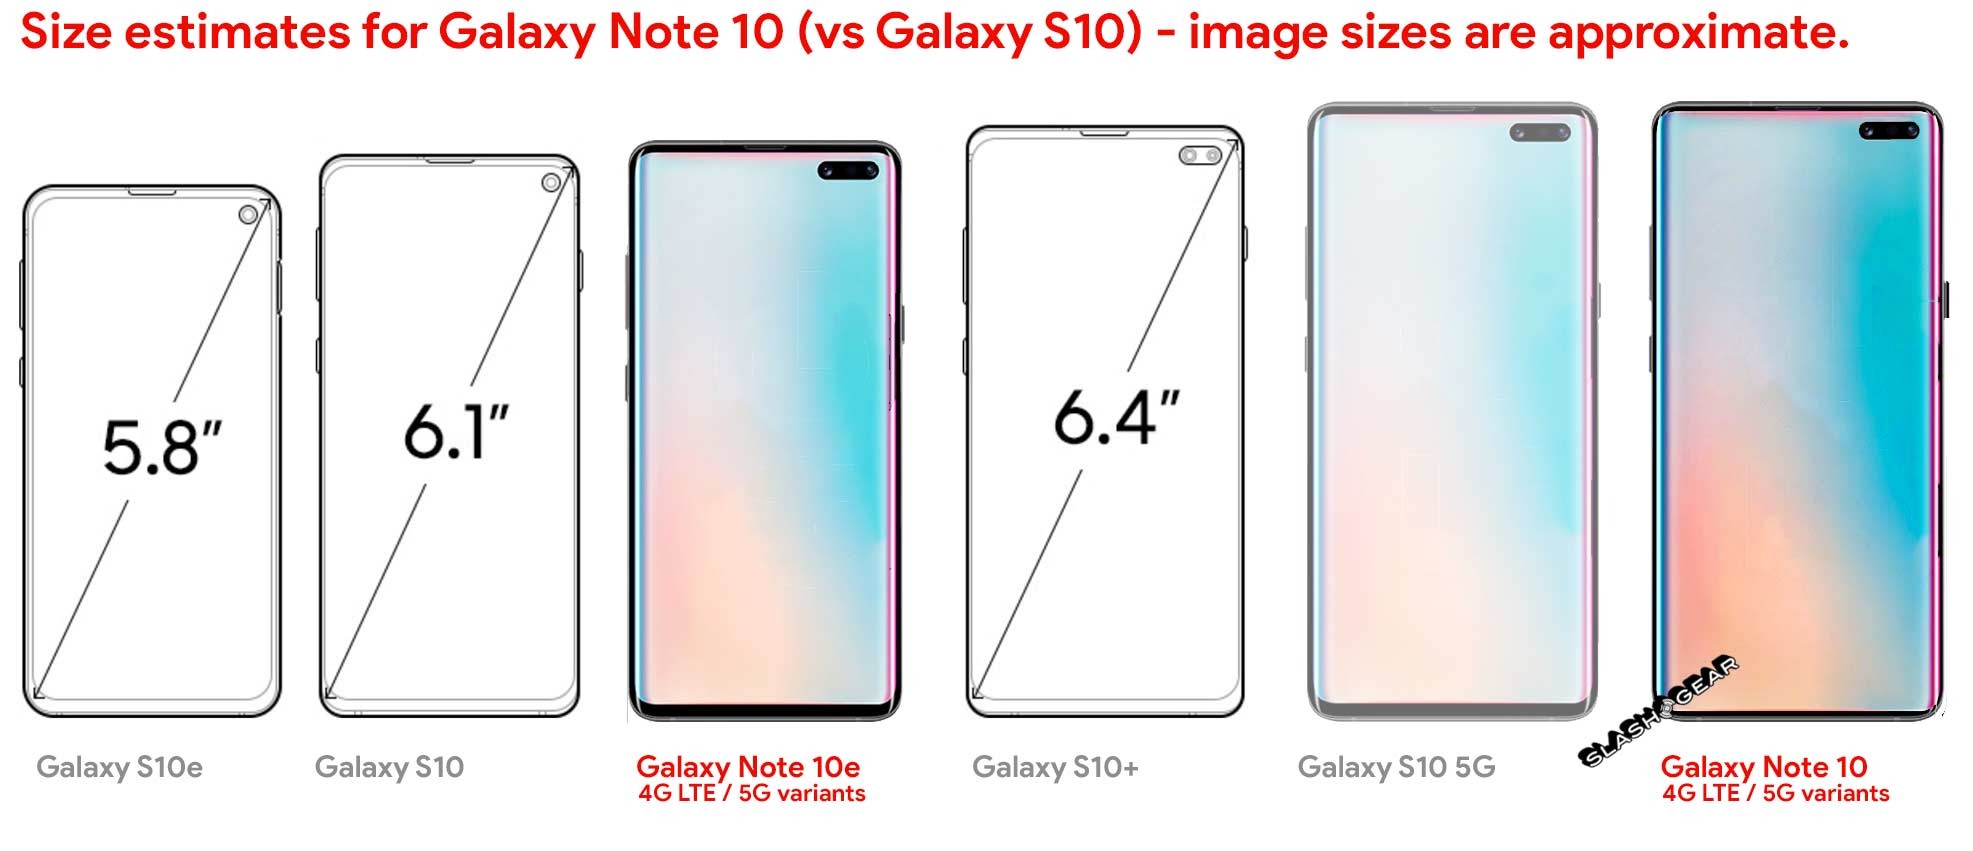 Galaxy Note 10 Pro release date 2019 tipped with specs